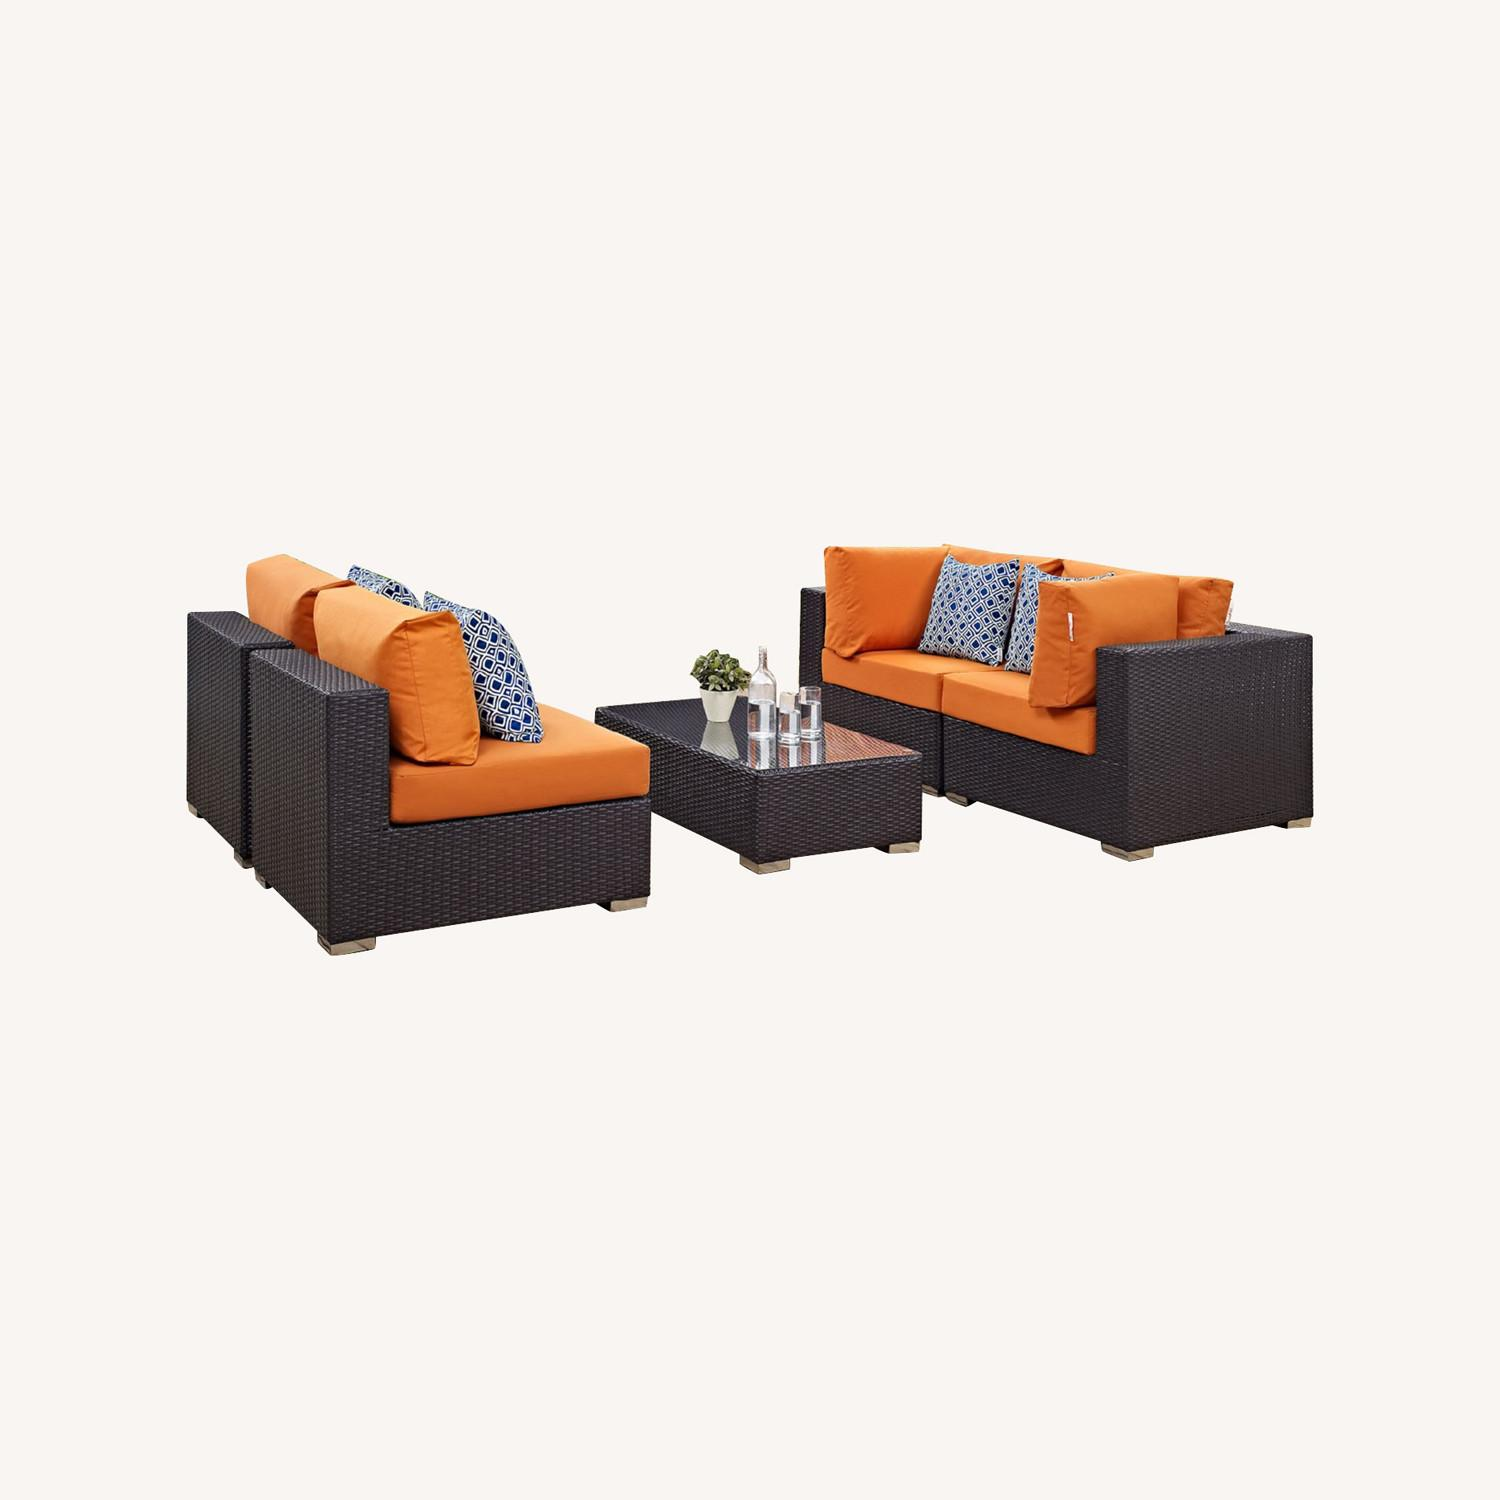 5-Piece Outdoor Sectional In Orange Fabric Cushion - image-4